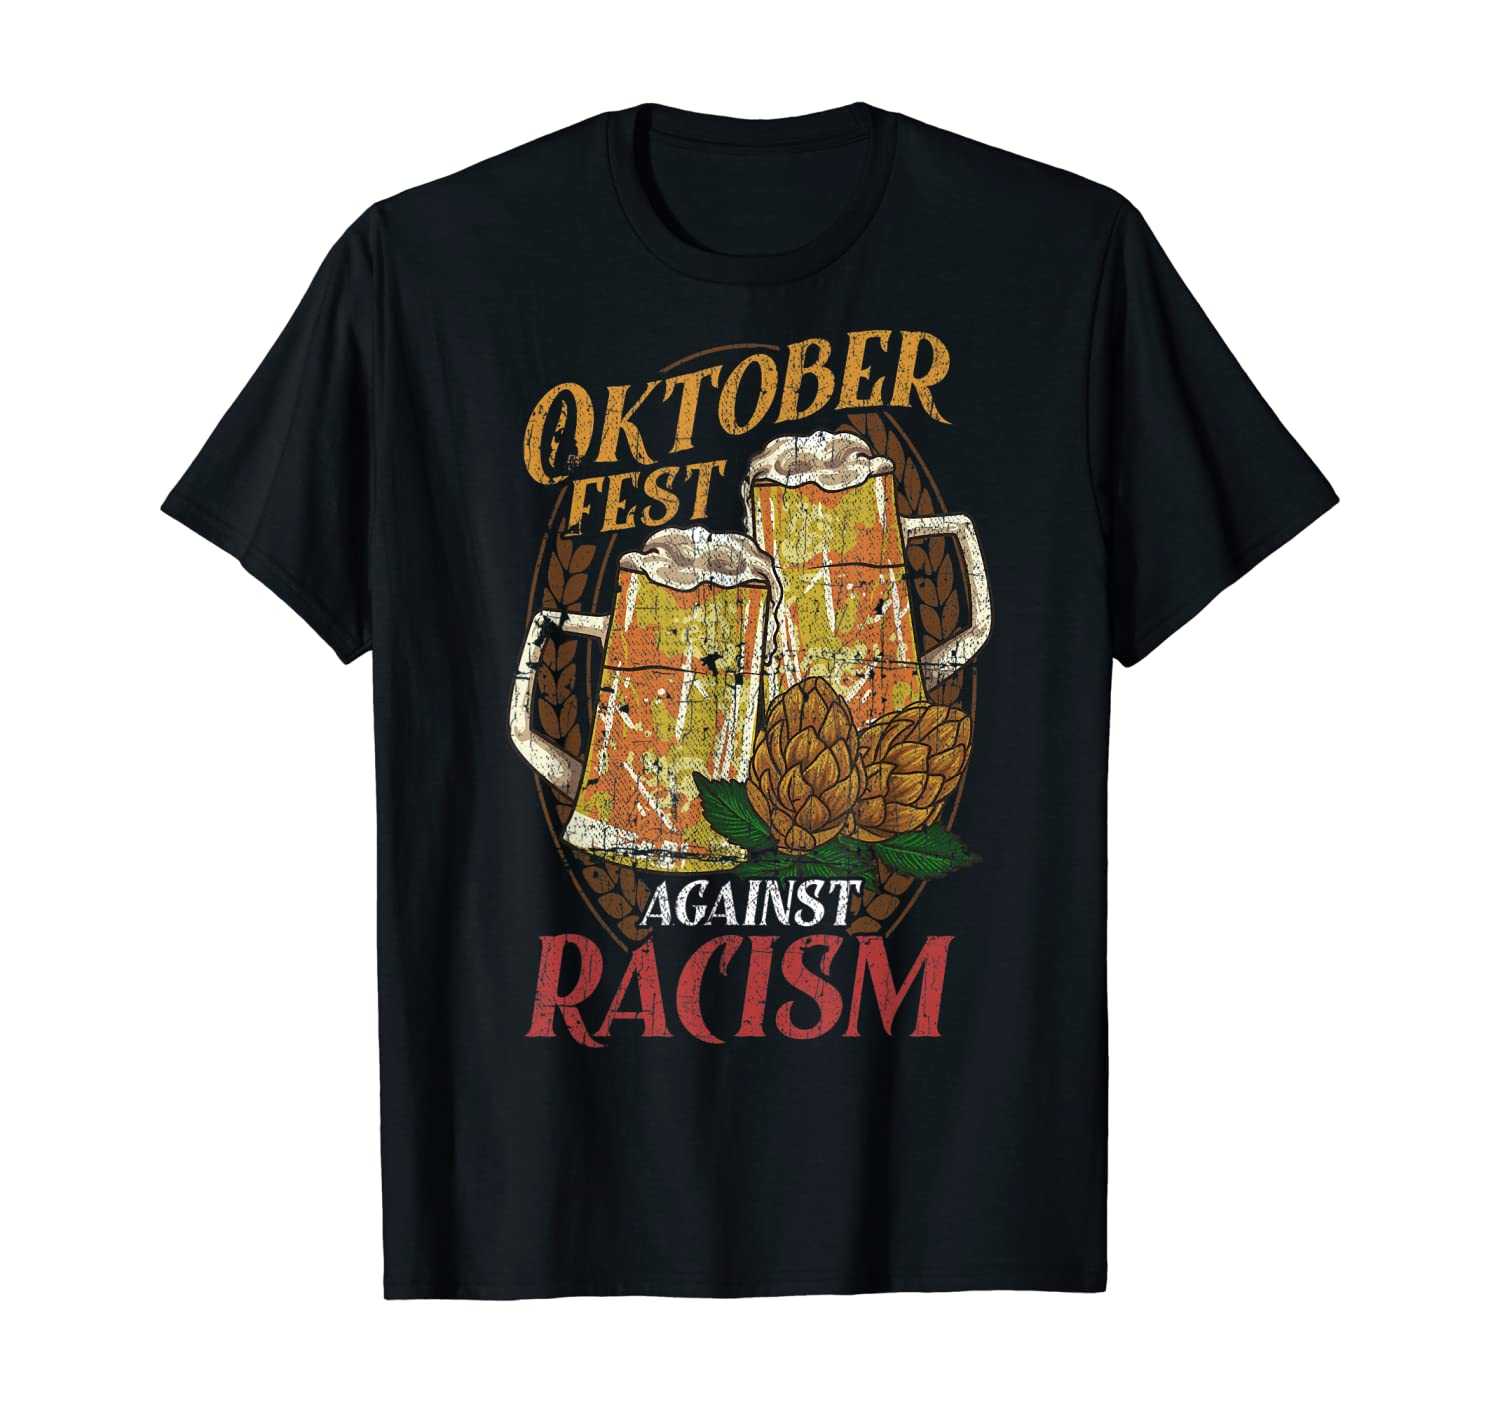 Oktoberfest Against Racism BLM Equality T-Shirt